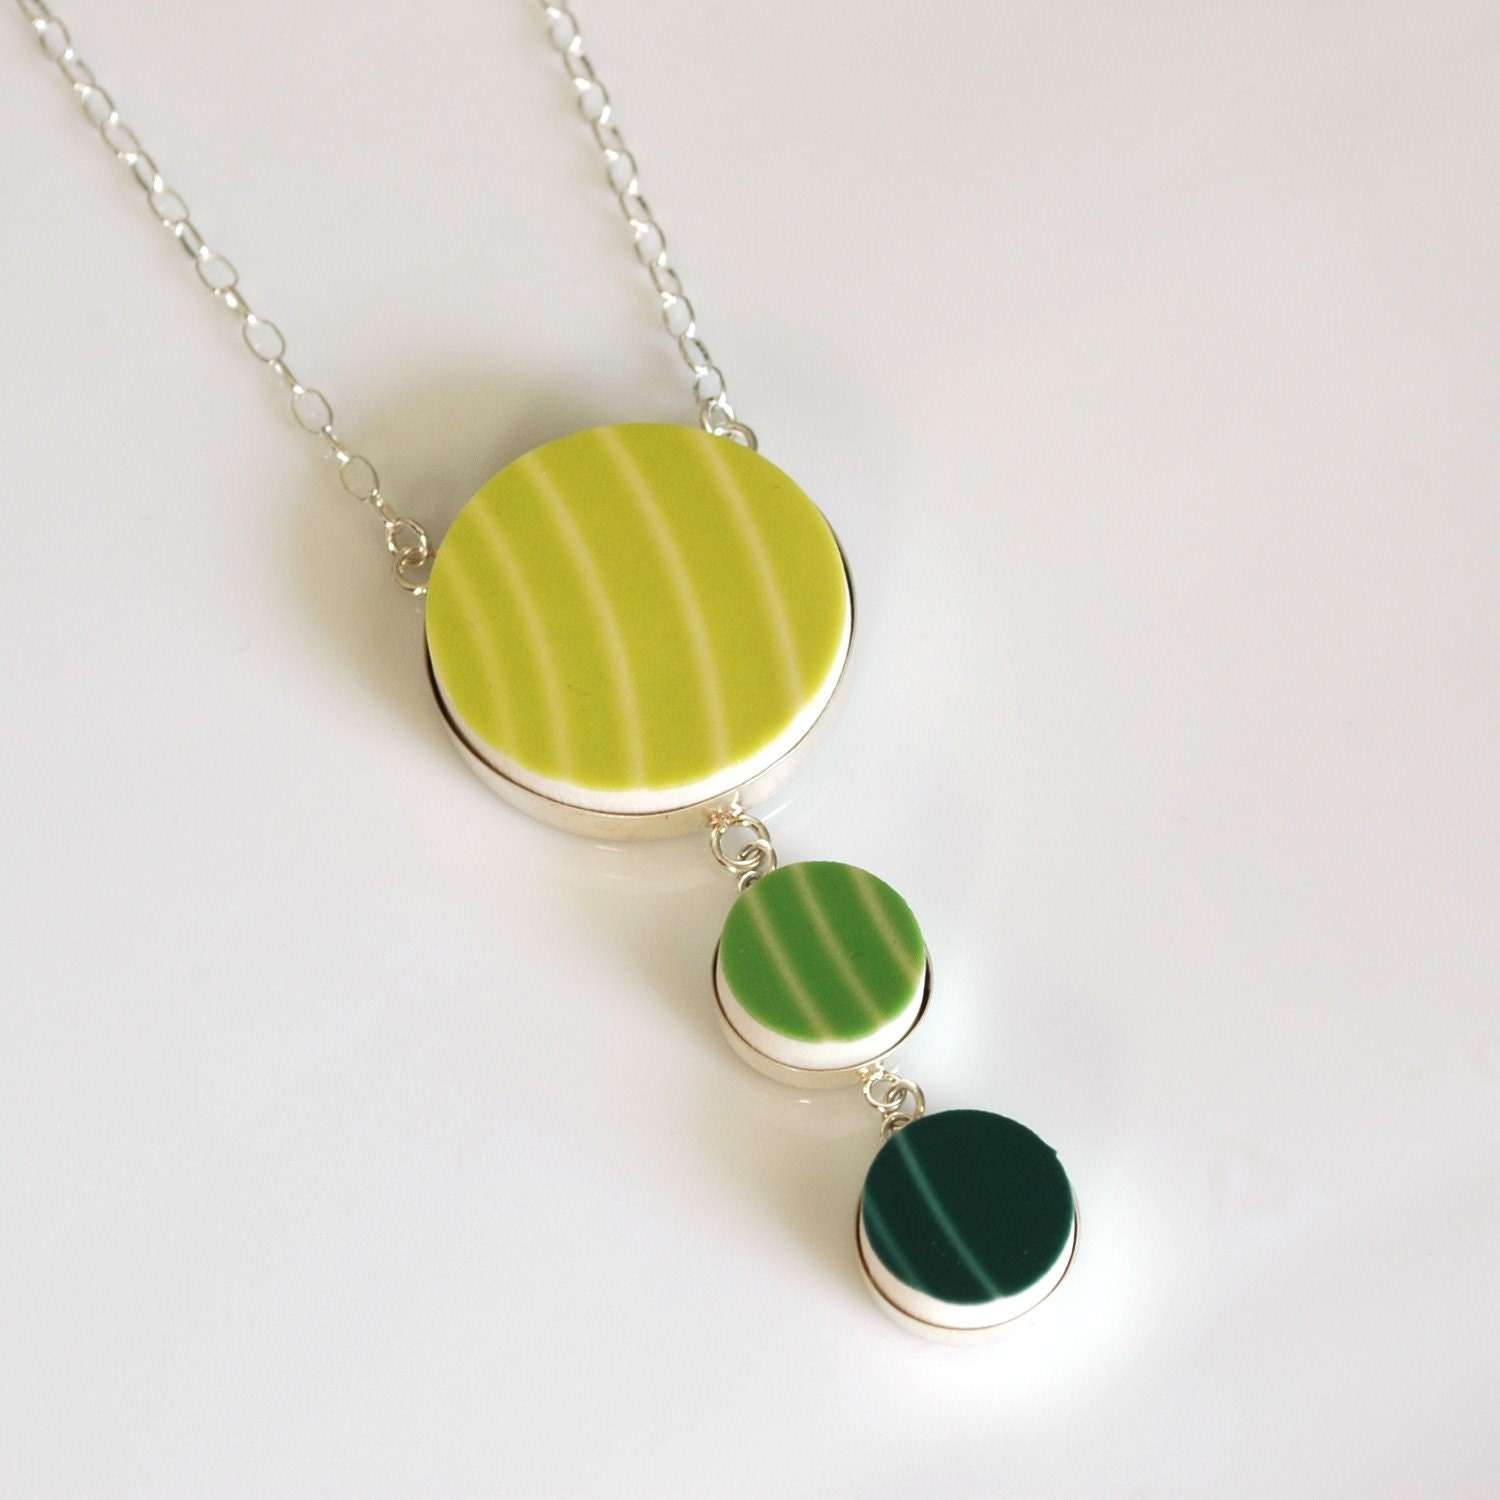 3 Piece Drop Sterling Silver Recycled China Necklace - Lemongrass, Shamrock, Chartruse